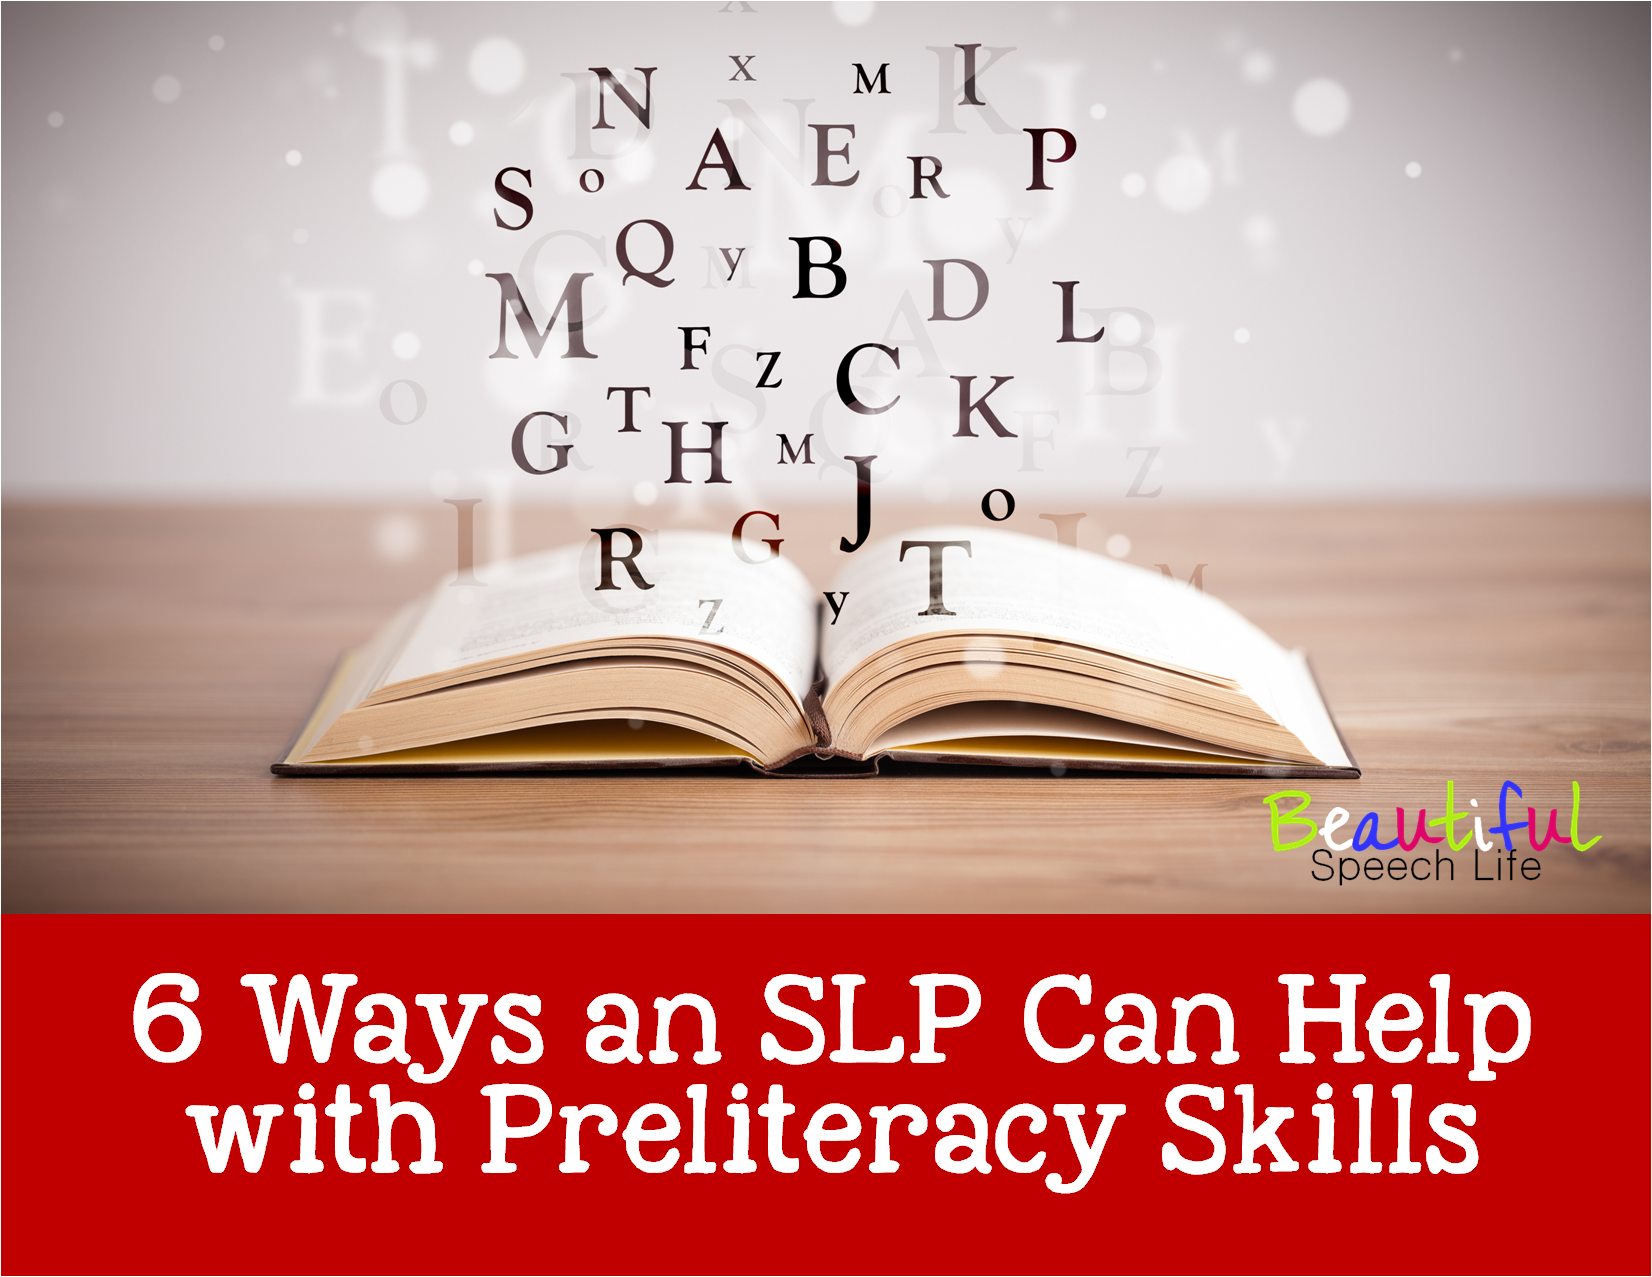 6 Ways an SLP Can Help with Preliteracy Skills